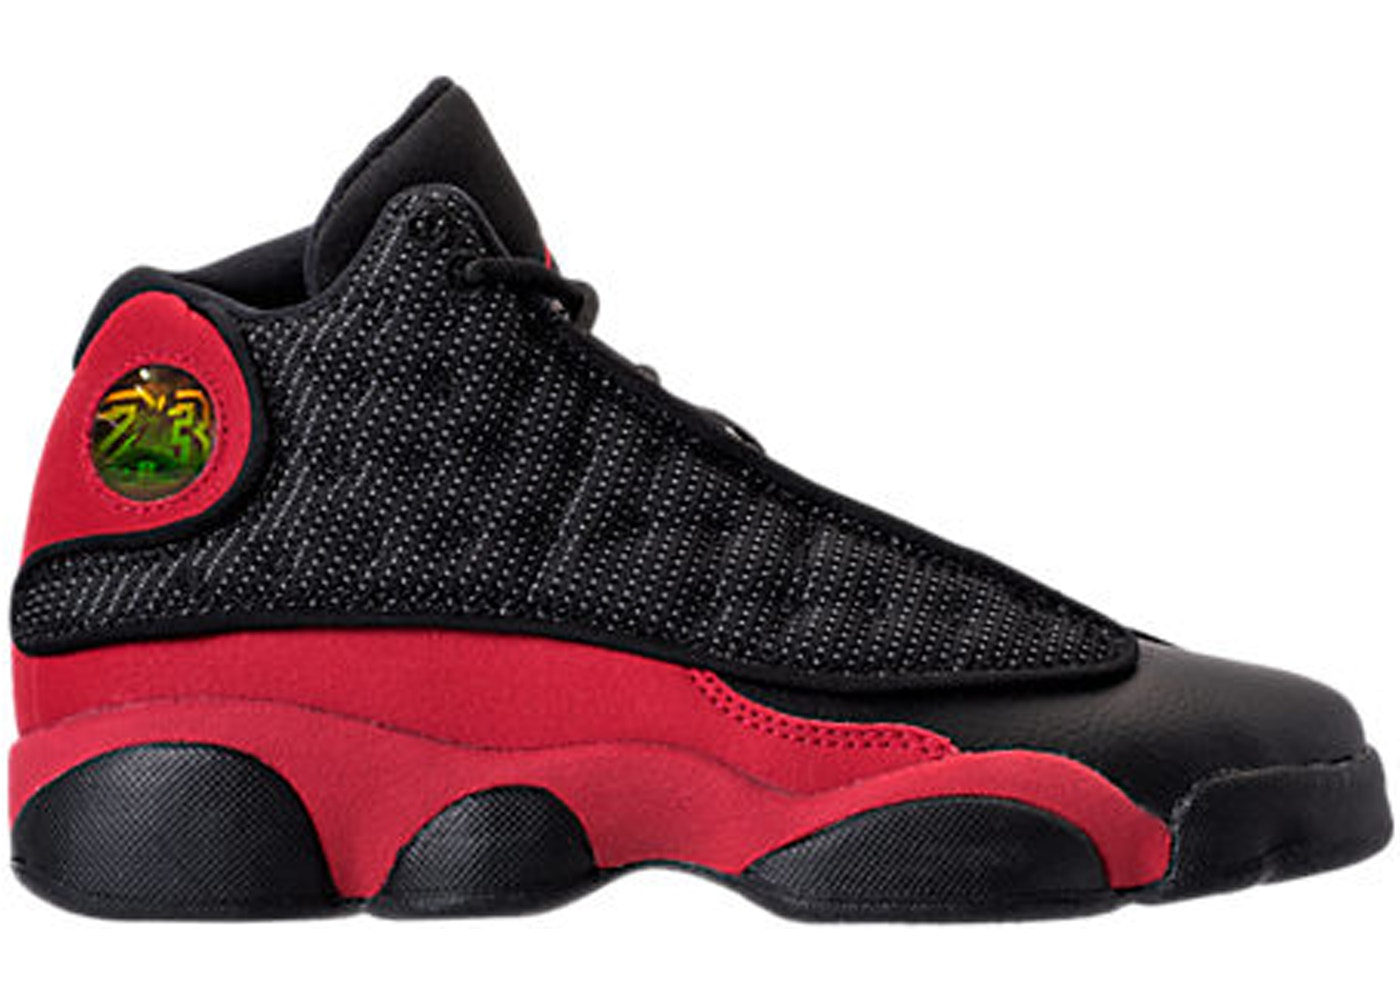 detailed look 48a66 e8f6a Jordan 13 Retro Bred 2017 (GS) - 414574-004